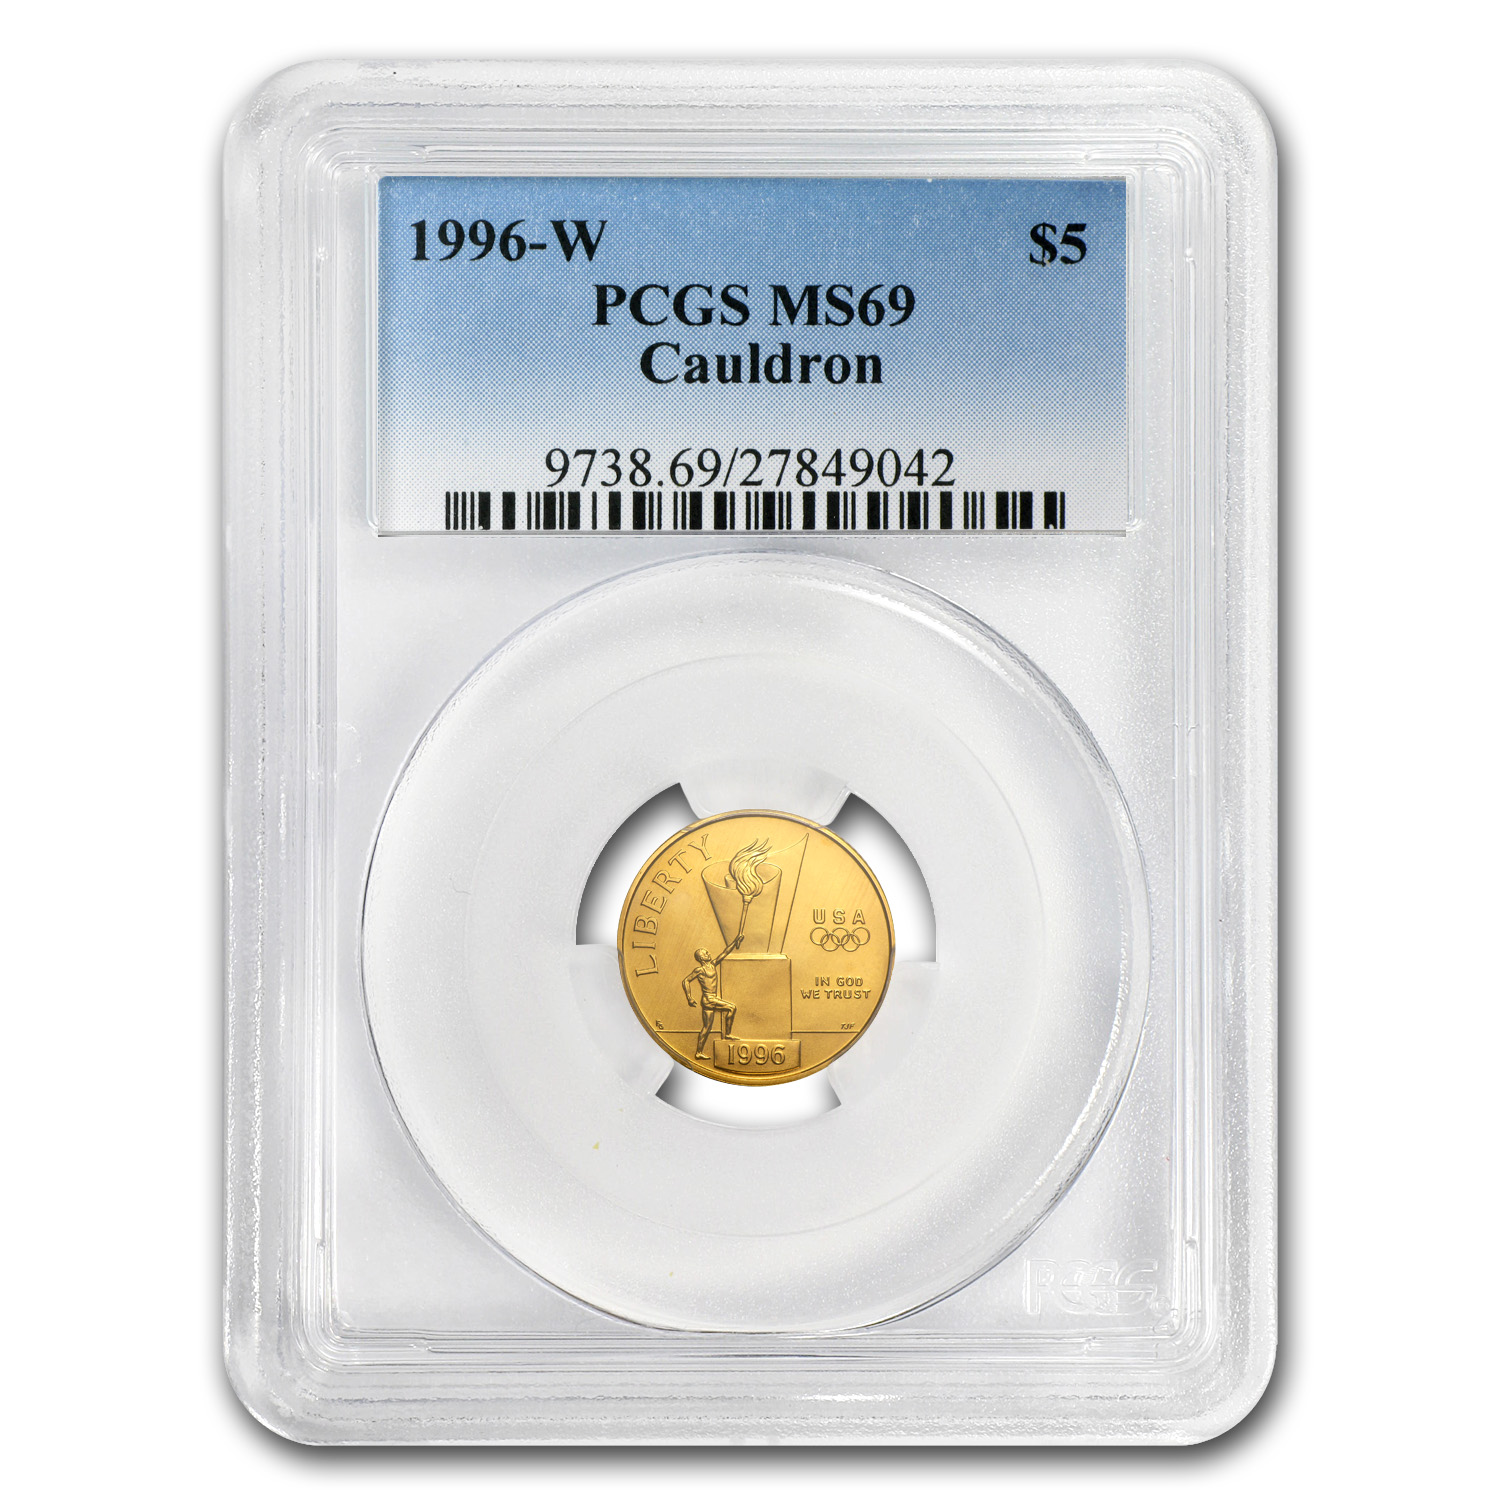 1996-W Gold $5 Commem Olympic Cauldron MS-69 PCGS